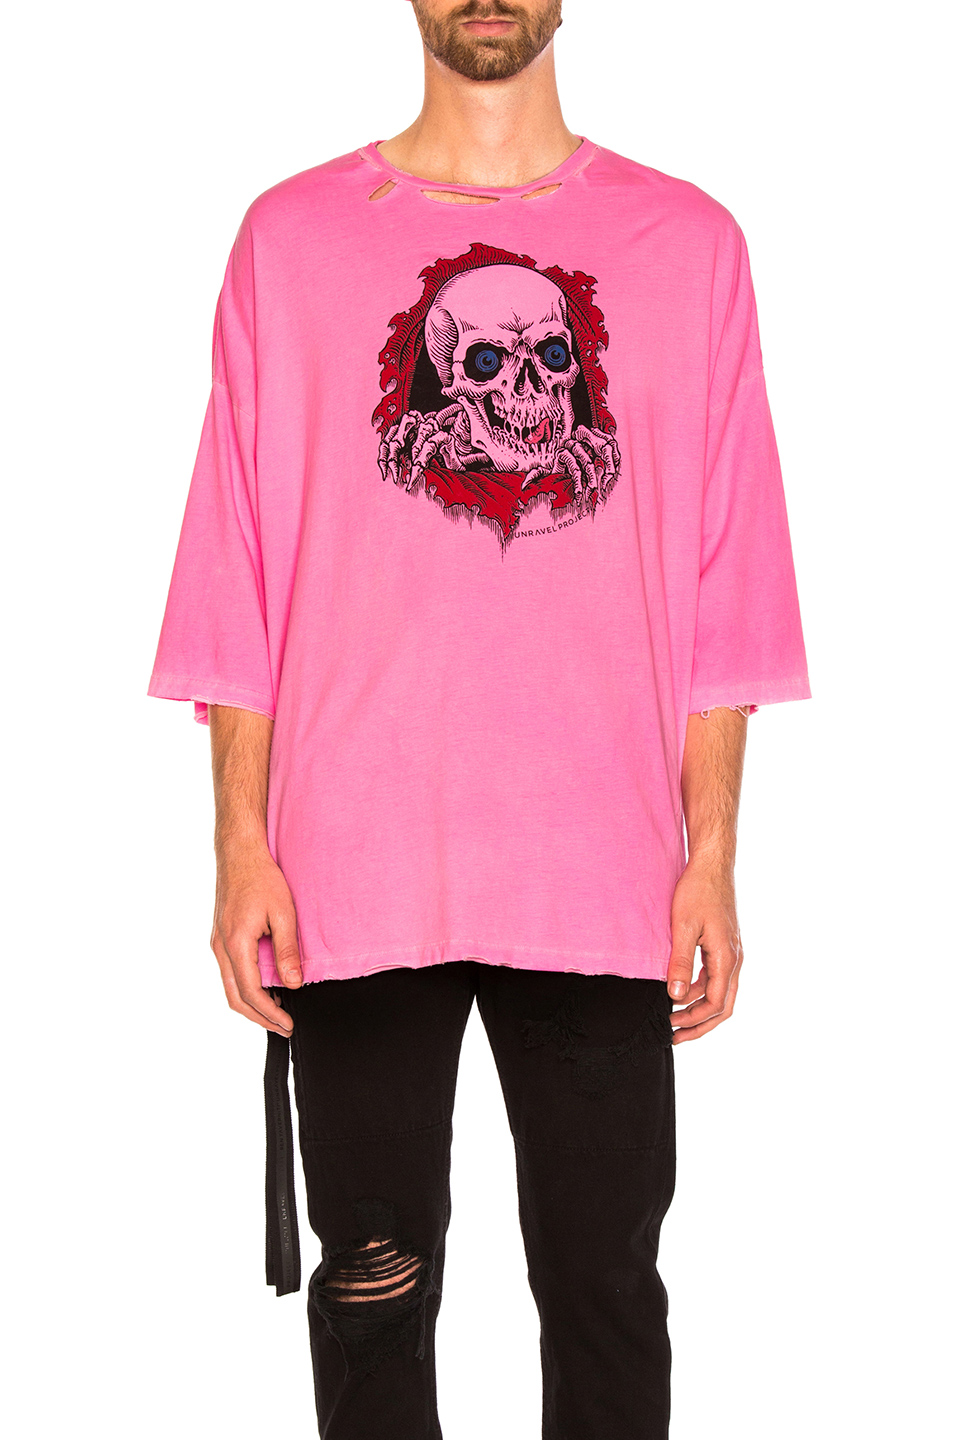 Unravel for FWRD Oversized Boxy Tee in Pink,Neon